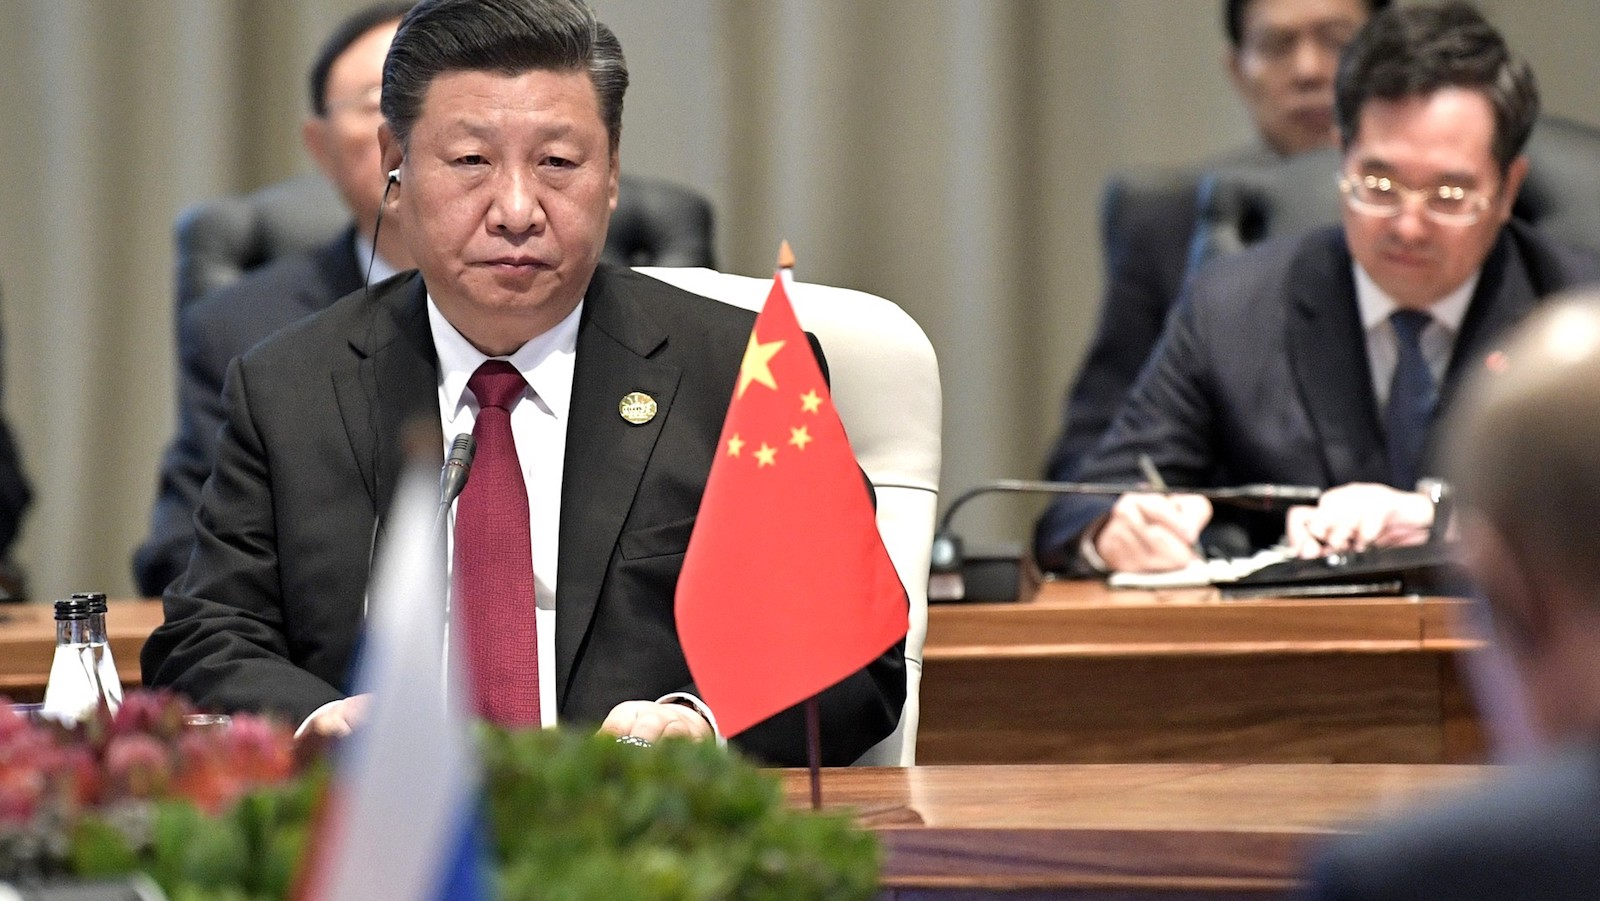 Chinese President Xi Jinping last week at the BRICS Summit in South Africa (Photo: Kremlin.ru)